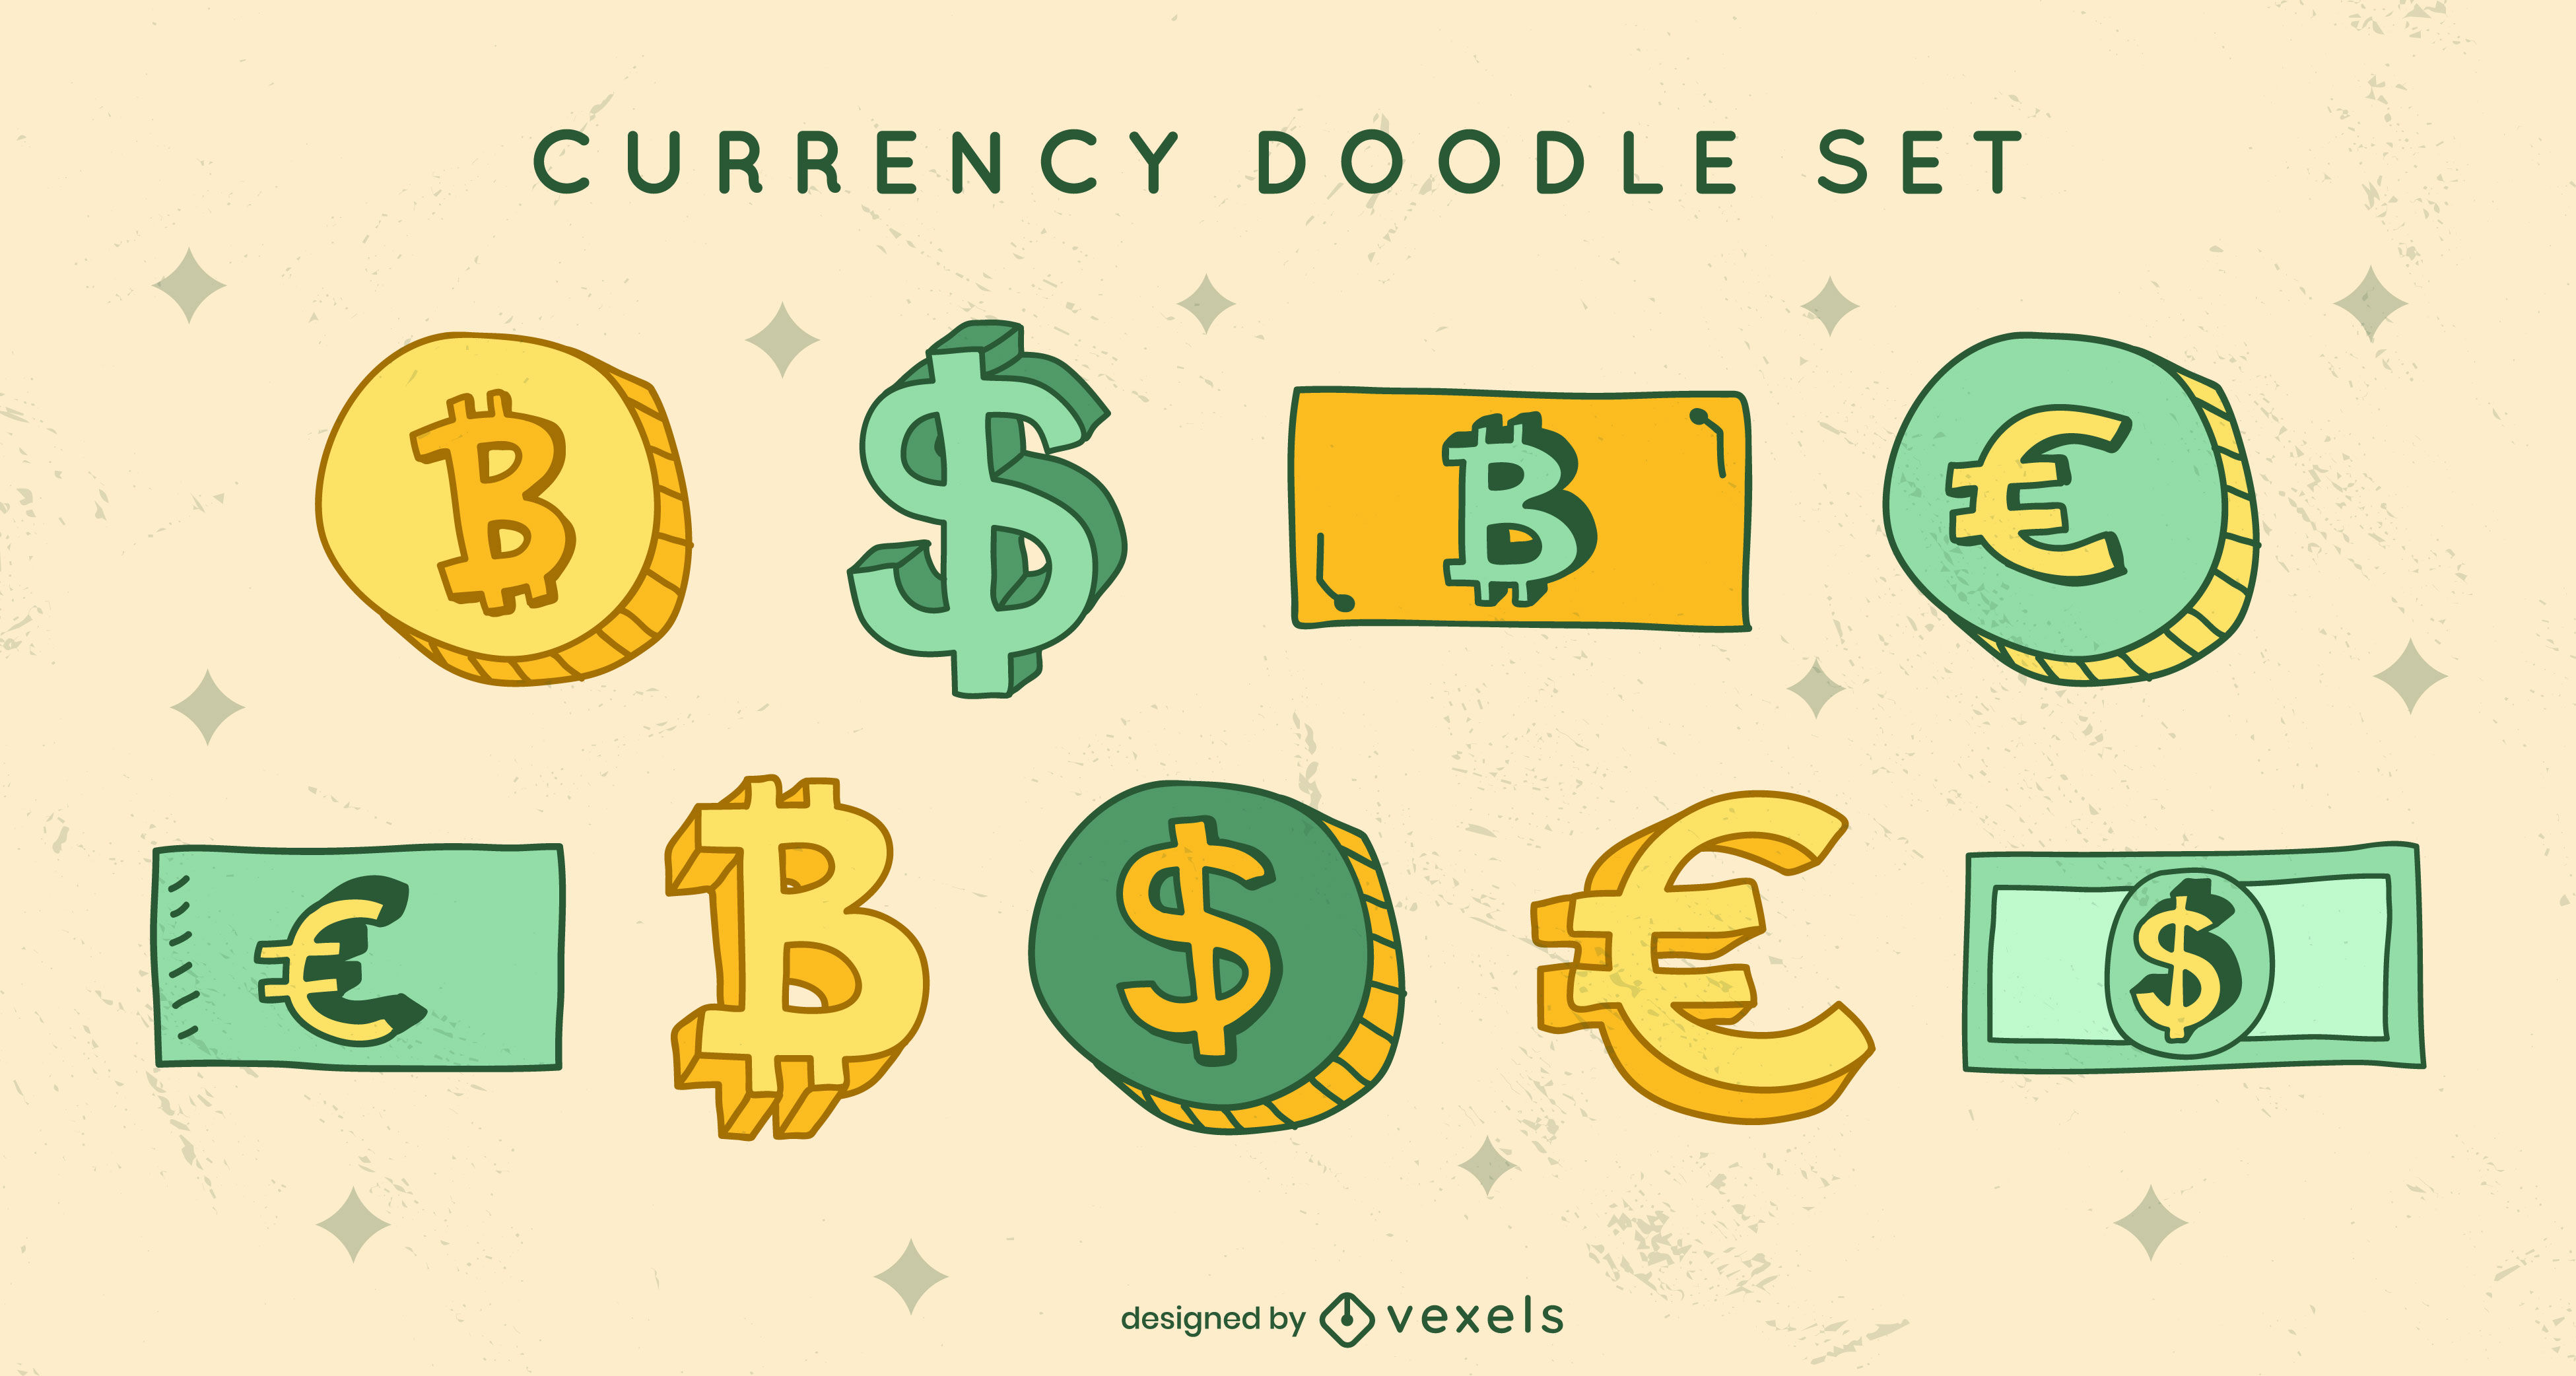 Currency payment bills and coins doodle set